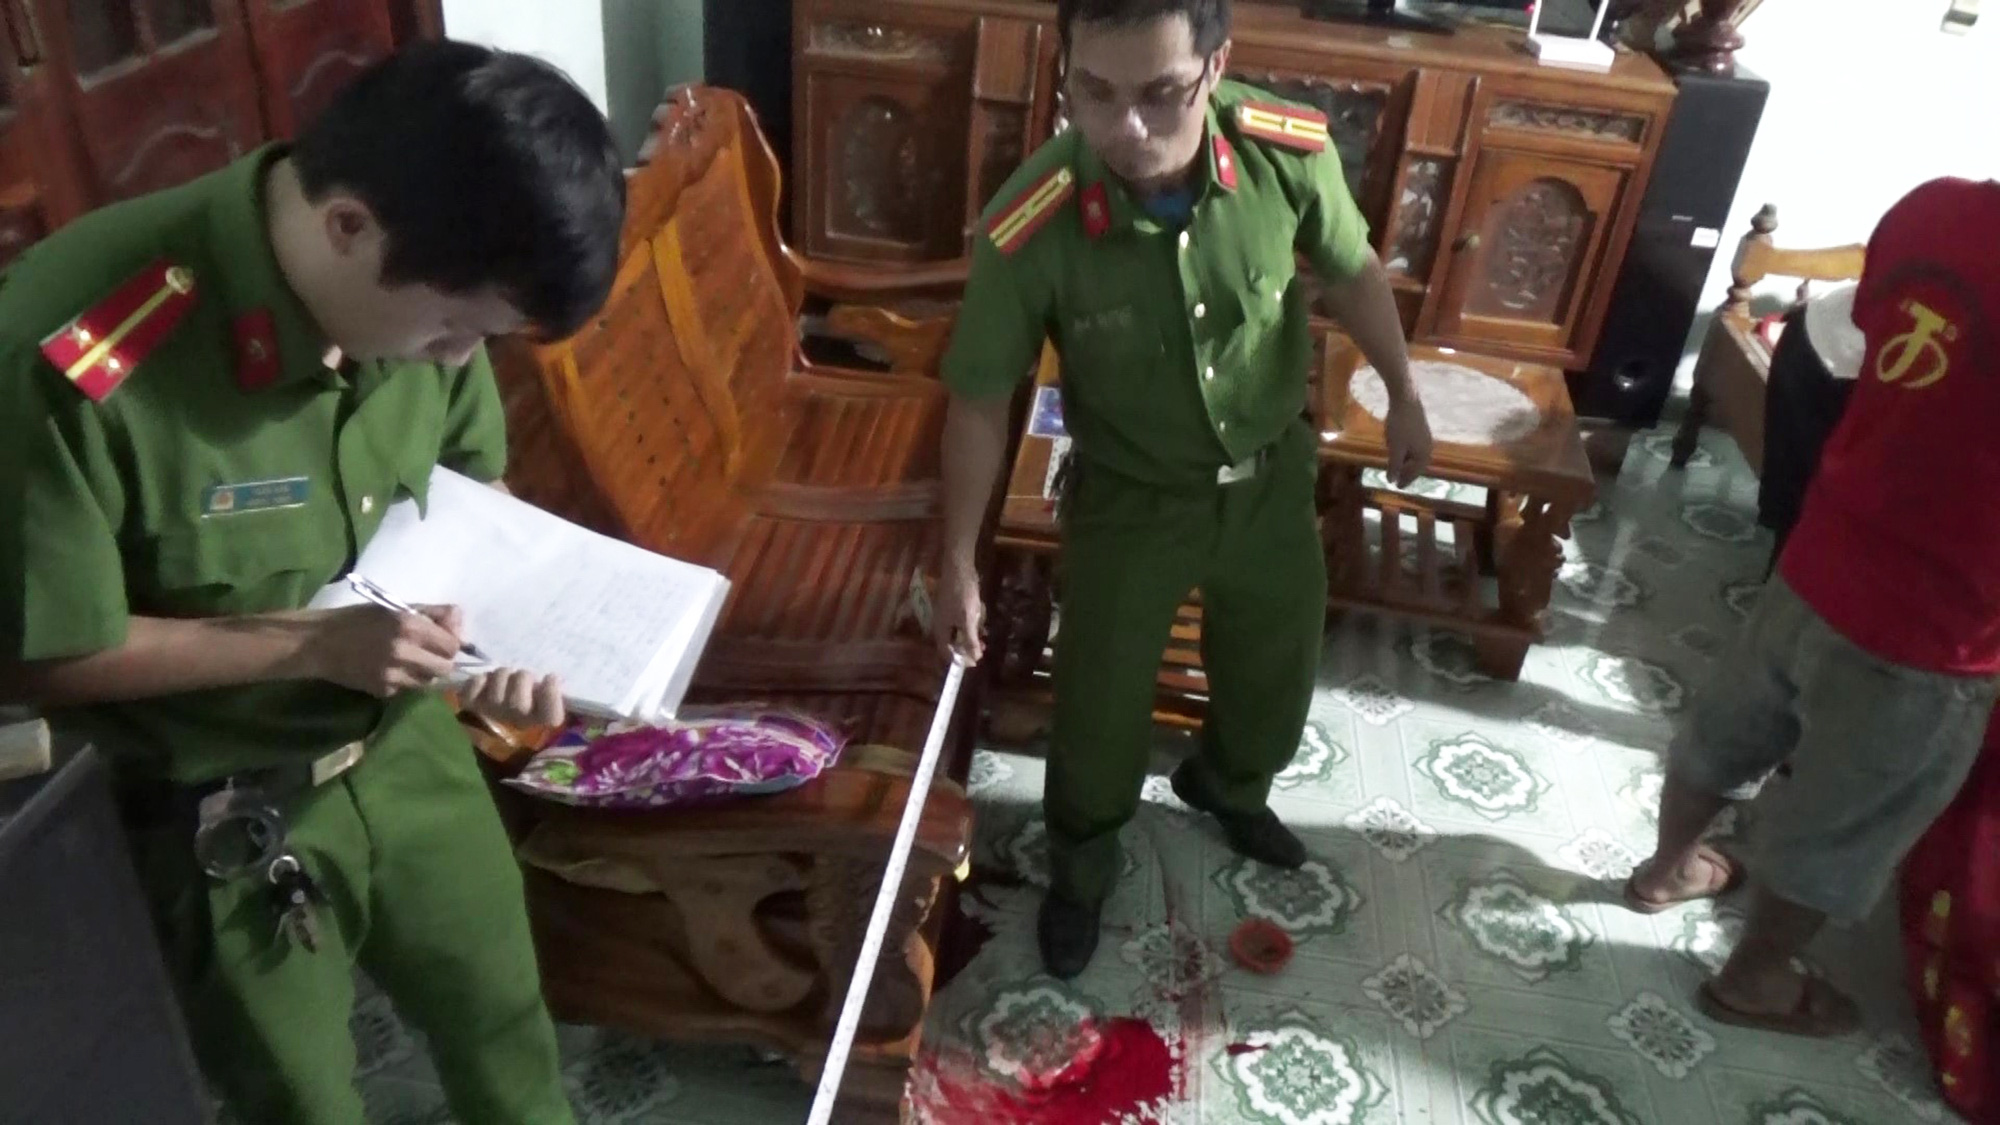 Officers examine the house of Nguyen Thanh Tai following the murder in Quang Nam Province, Vietnam, November 26, 2020. Photo: Tuan Tu / Tuoi Tre